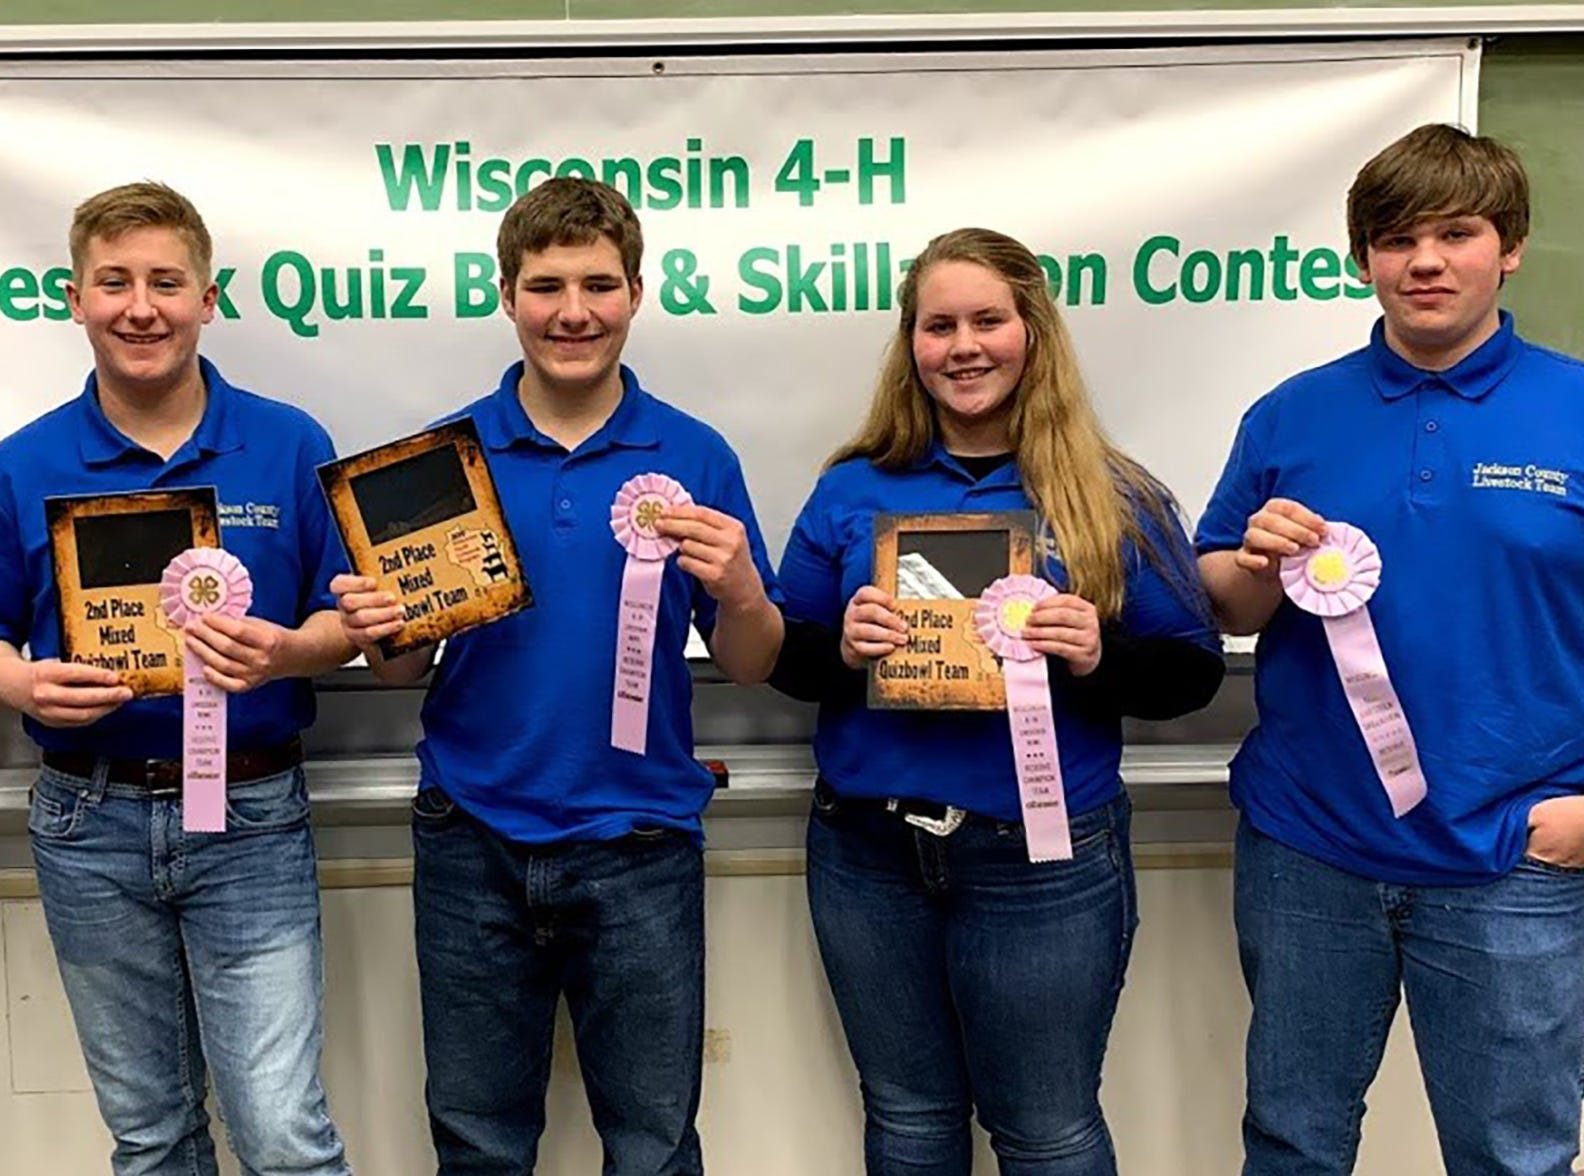 Reserve champion Quiz Bowl Jackson County members are pictured (from left) Austin Laufenberg, Trent Laufenberg, Kaden Moseley, Grace Kling, Wyatt Berg.